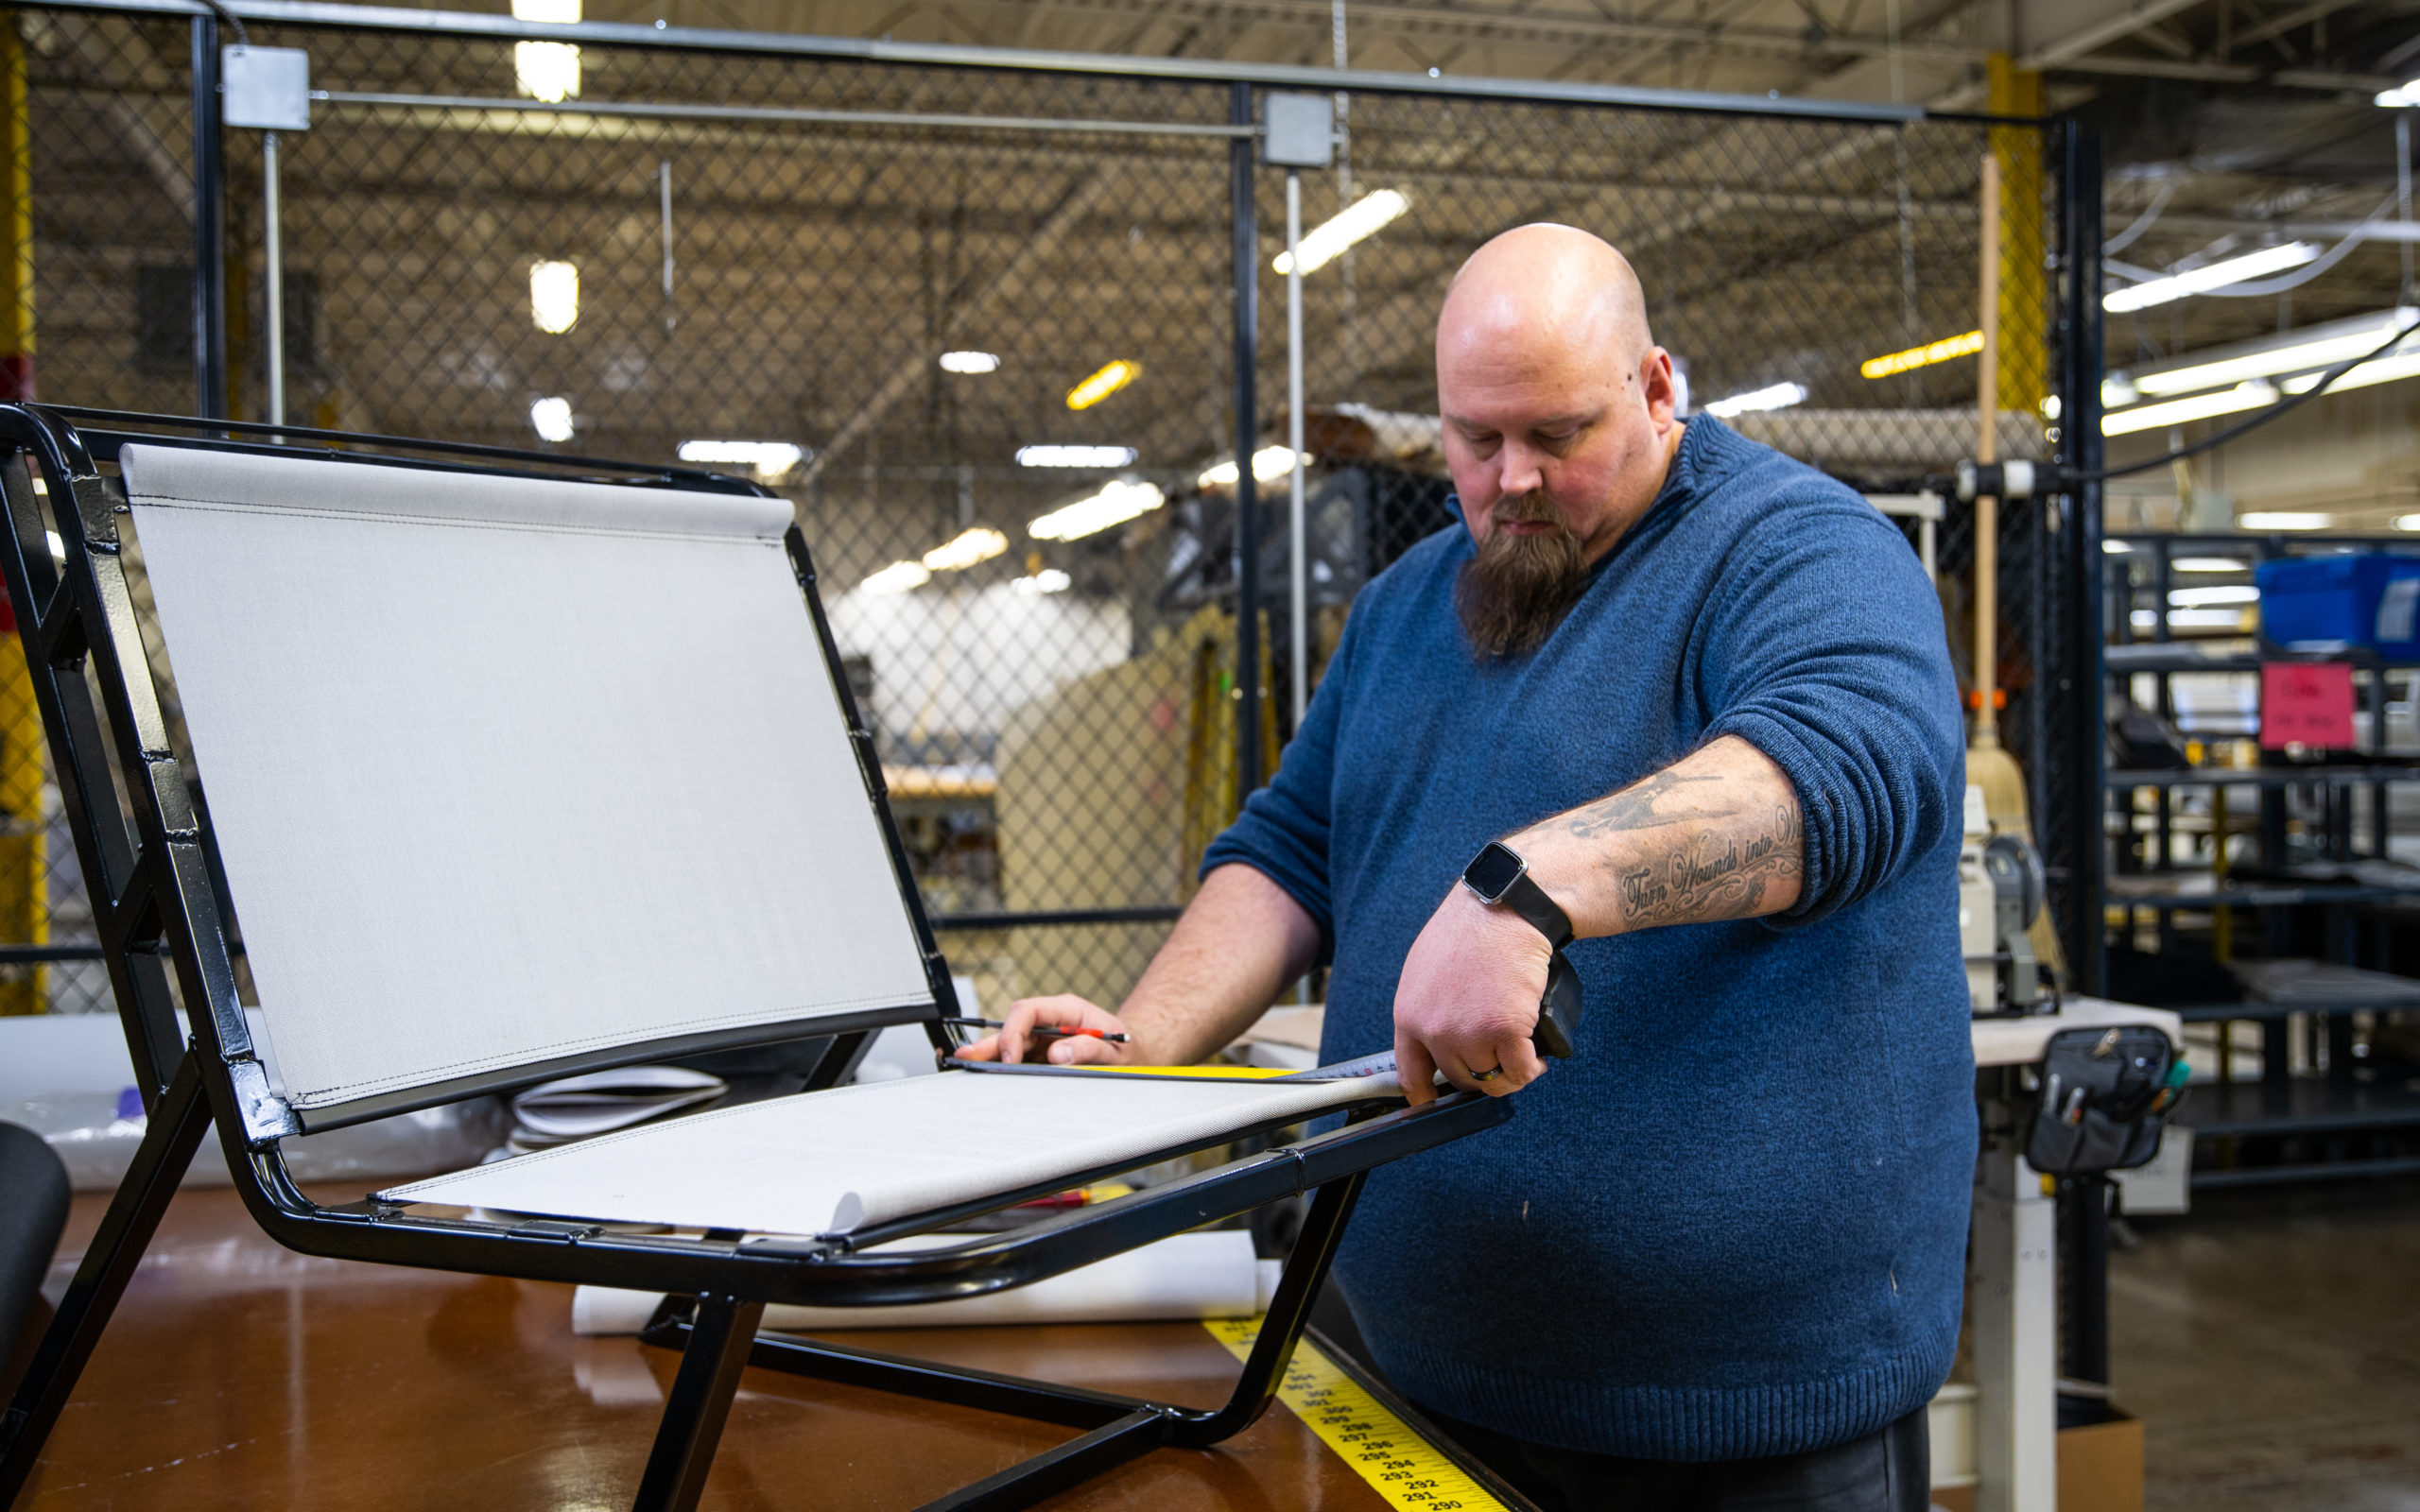 A textile prototyping expert crafts a prototype chair.